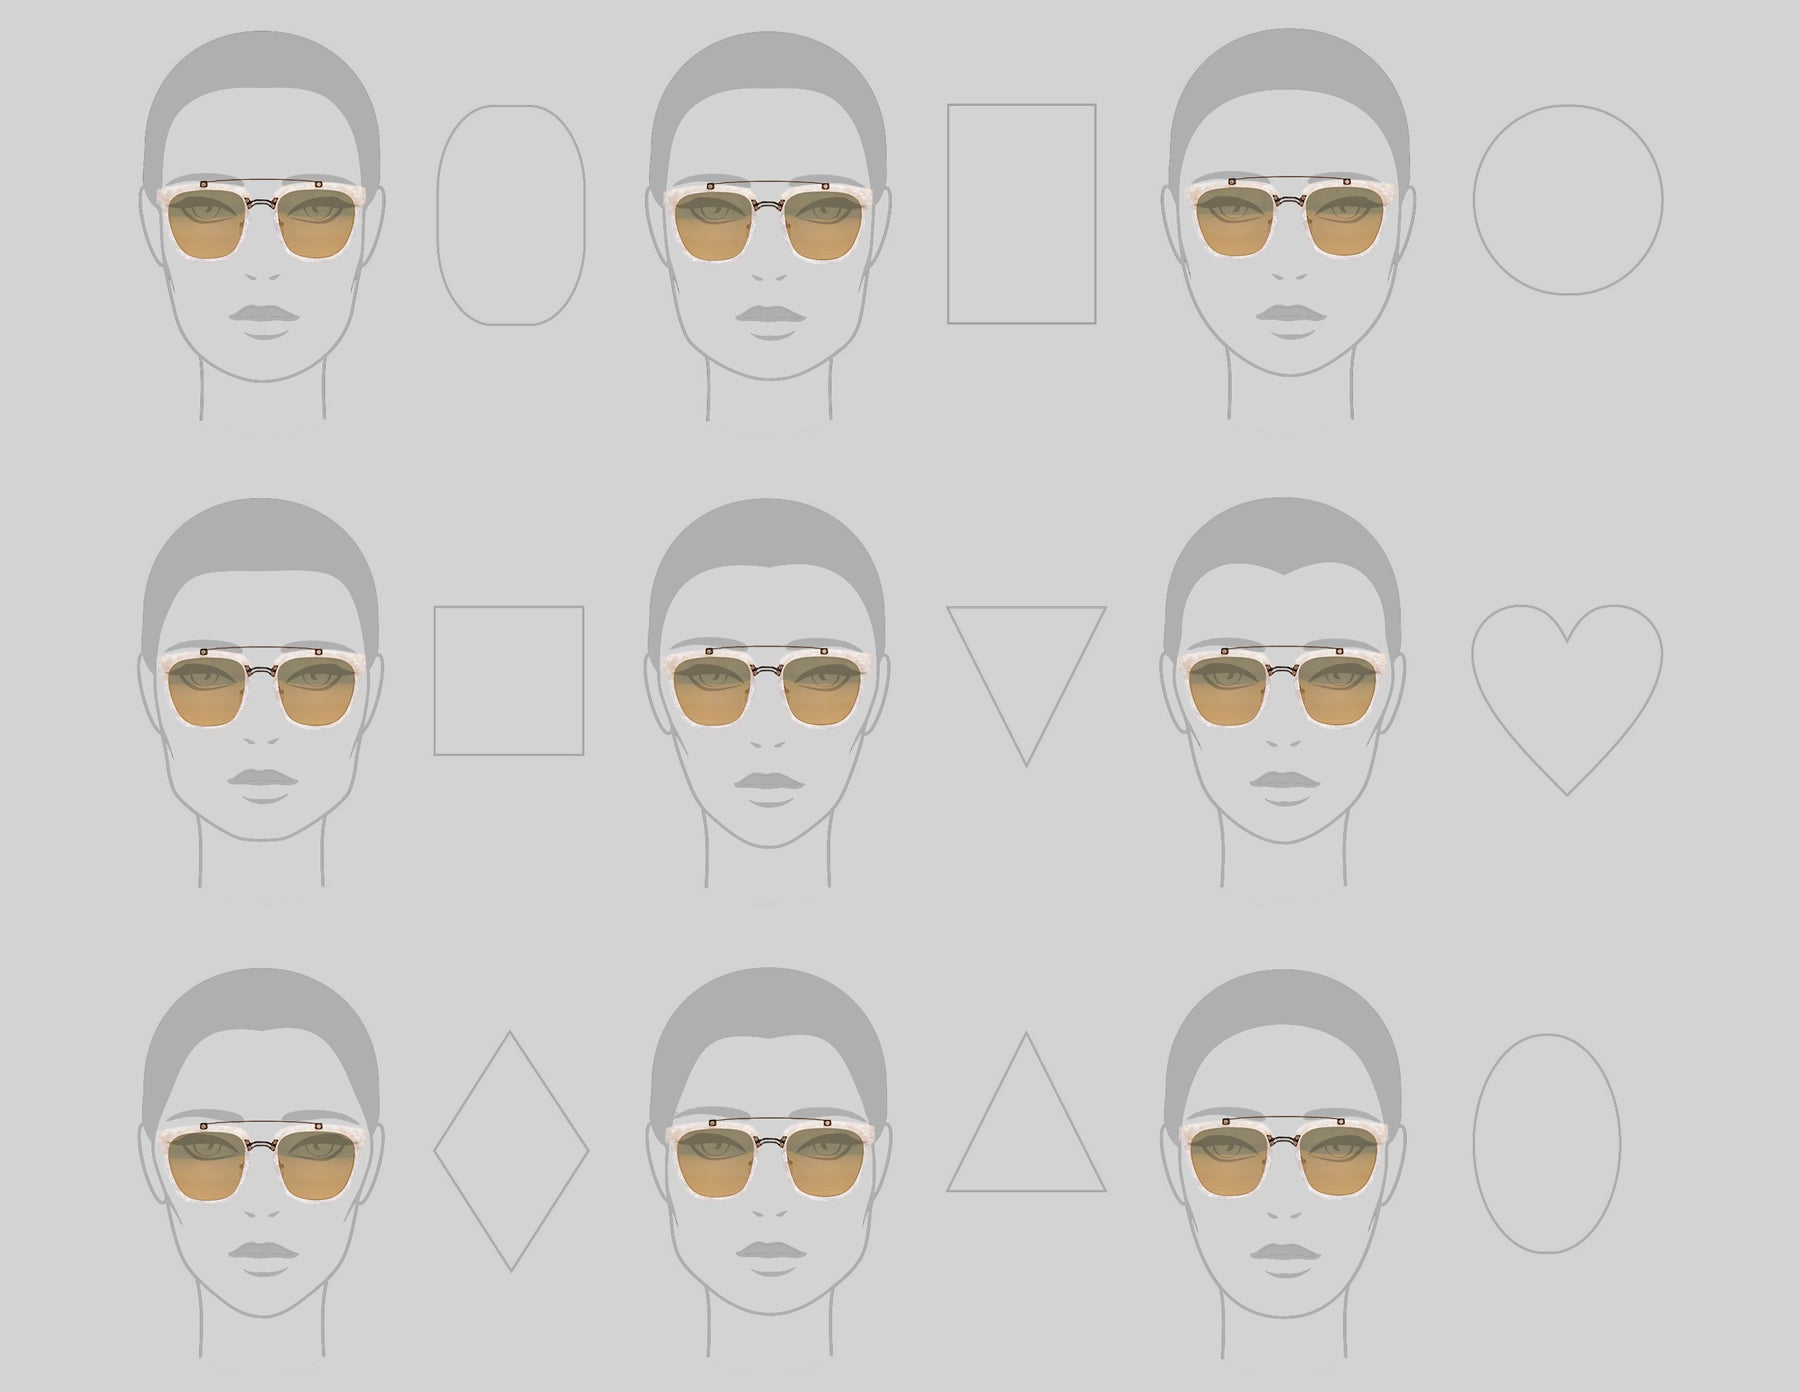 FIND YOUR FACE SHAPE -- USE OUR FACE SHAPE STYLE GUIDE TO VIEW HOW THE GLASSES MAY LOOK ON YOU. Pearl Sunglasses, White Glasses, Unisex Eyewear, Oversized Cat Eye Sunglasses, Sunglasses Face Shape Guide, Eyewear Style Guide, Independent Eyewear, Woman-Owned Business, Geometric Eyewear, Blue Sunglasses, Mythology, Accessories, Accessible Luxury, Los Angeles, Art Deco Inspired, Luxury, Celebrity Style